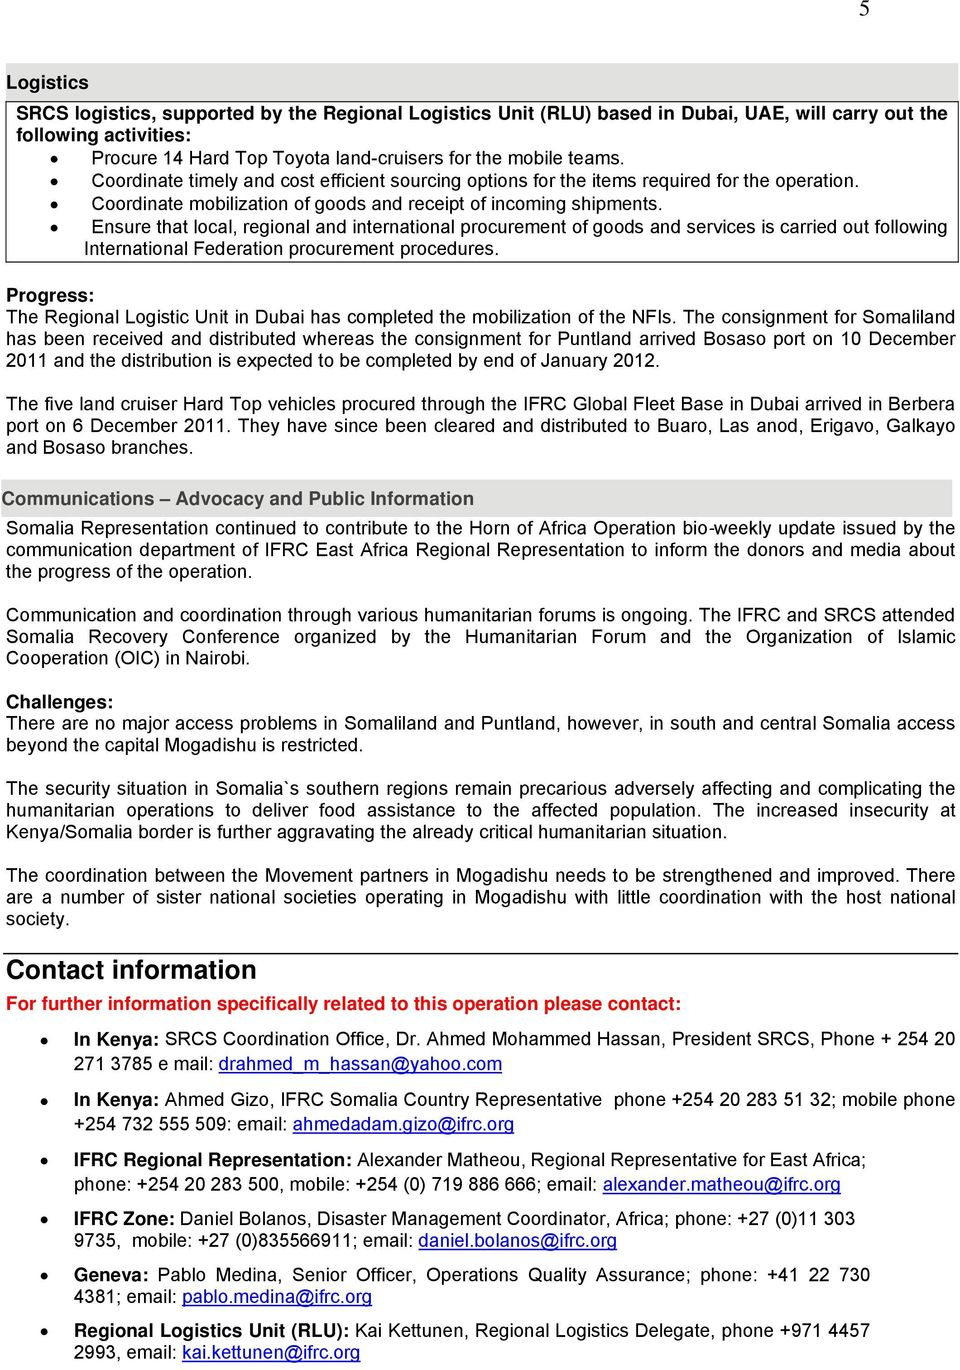 Emergency appeal operations update Somalia: Drought - PDF